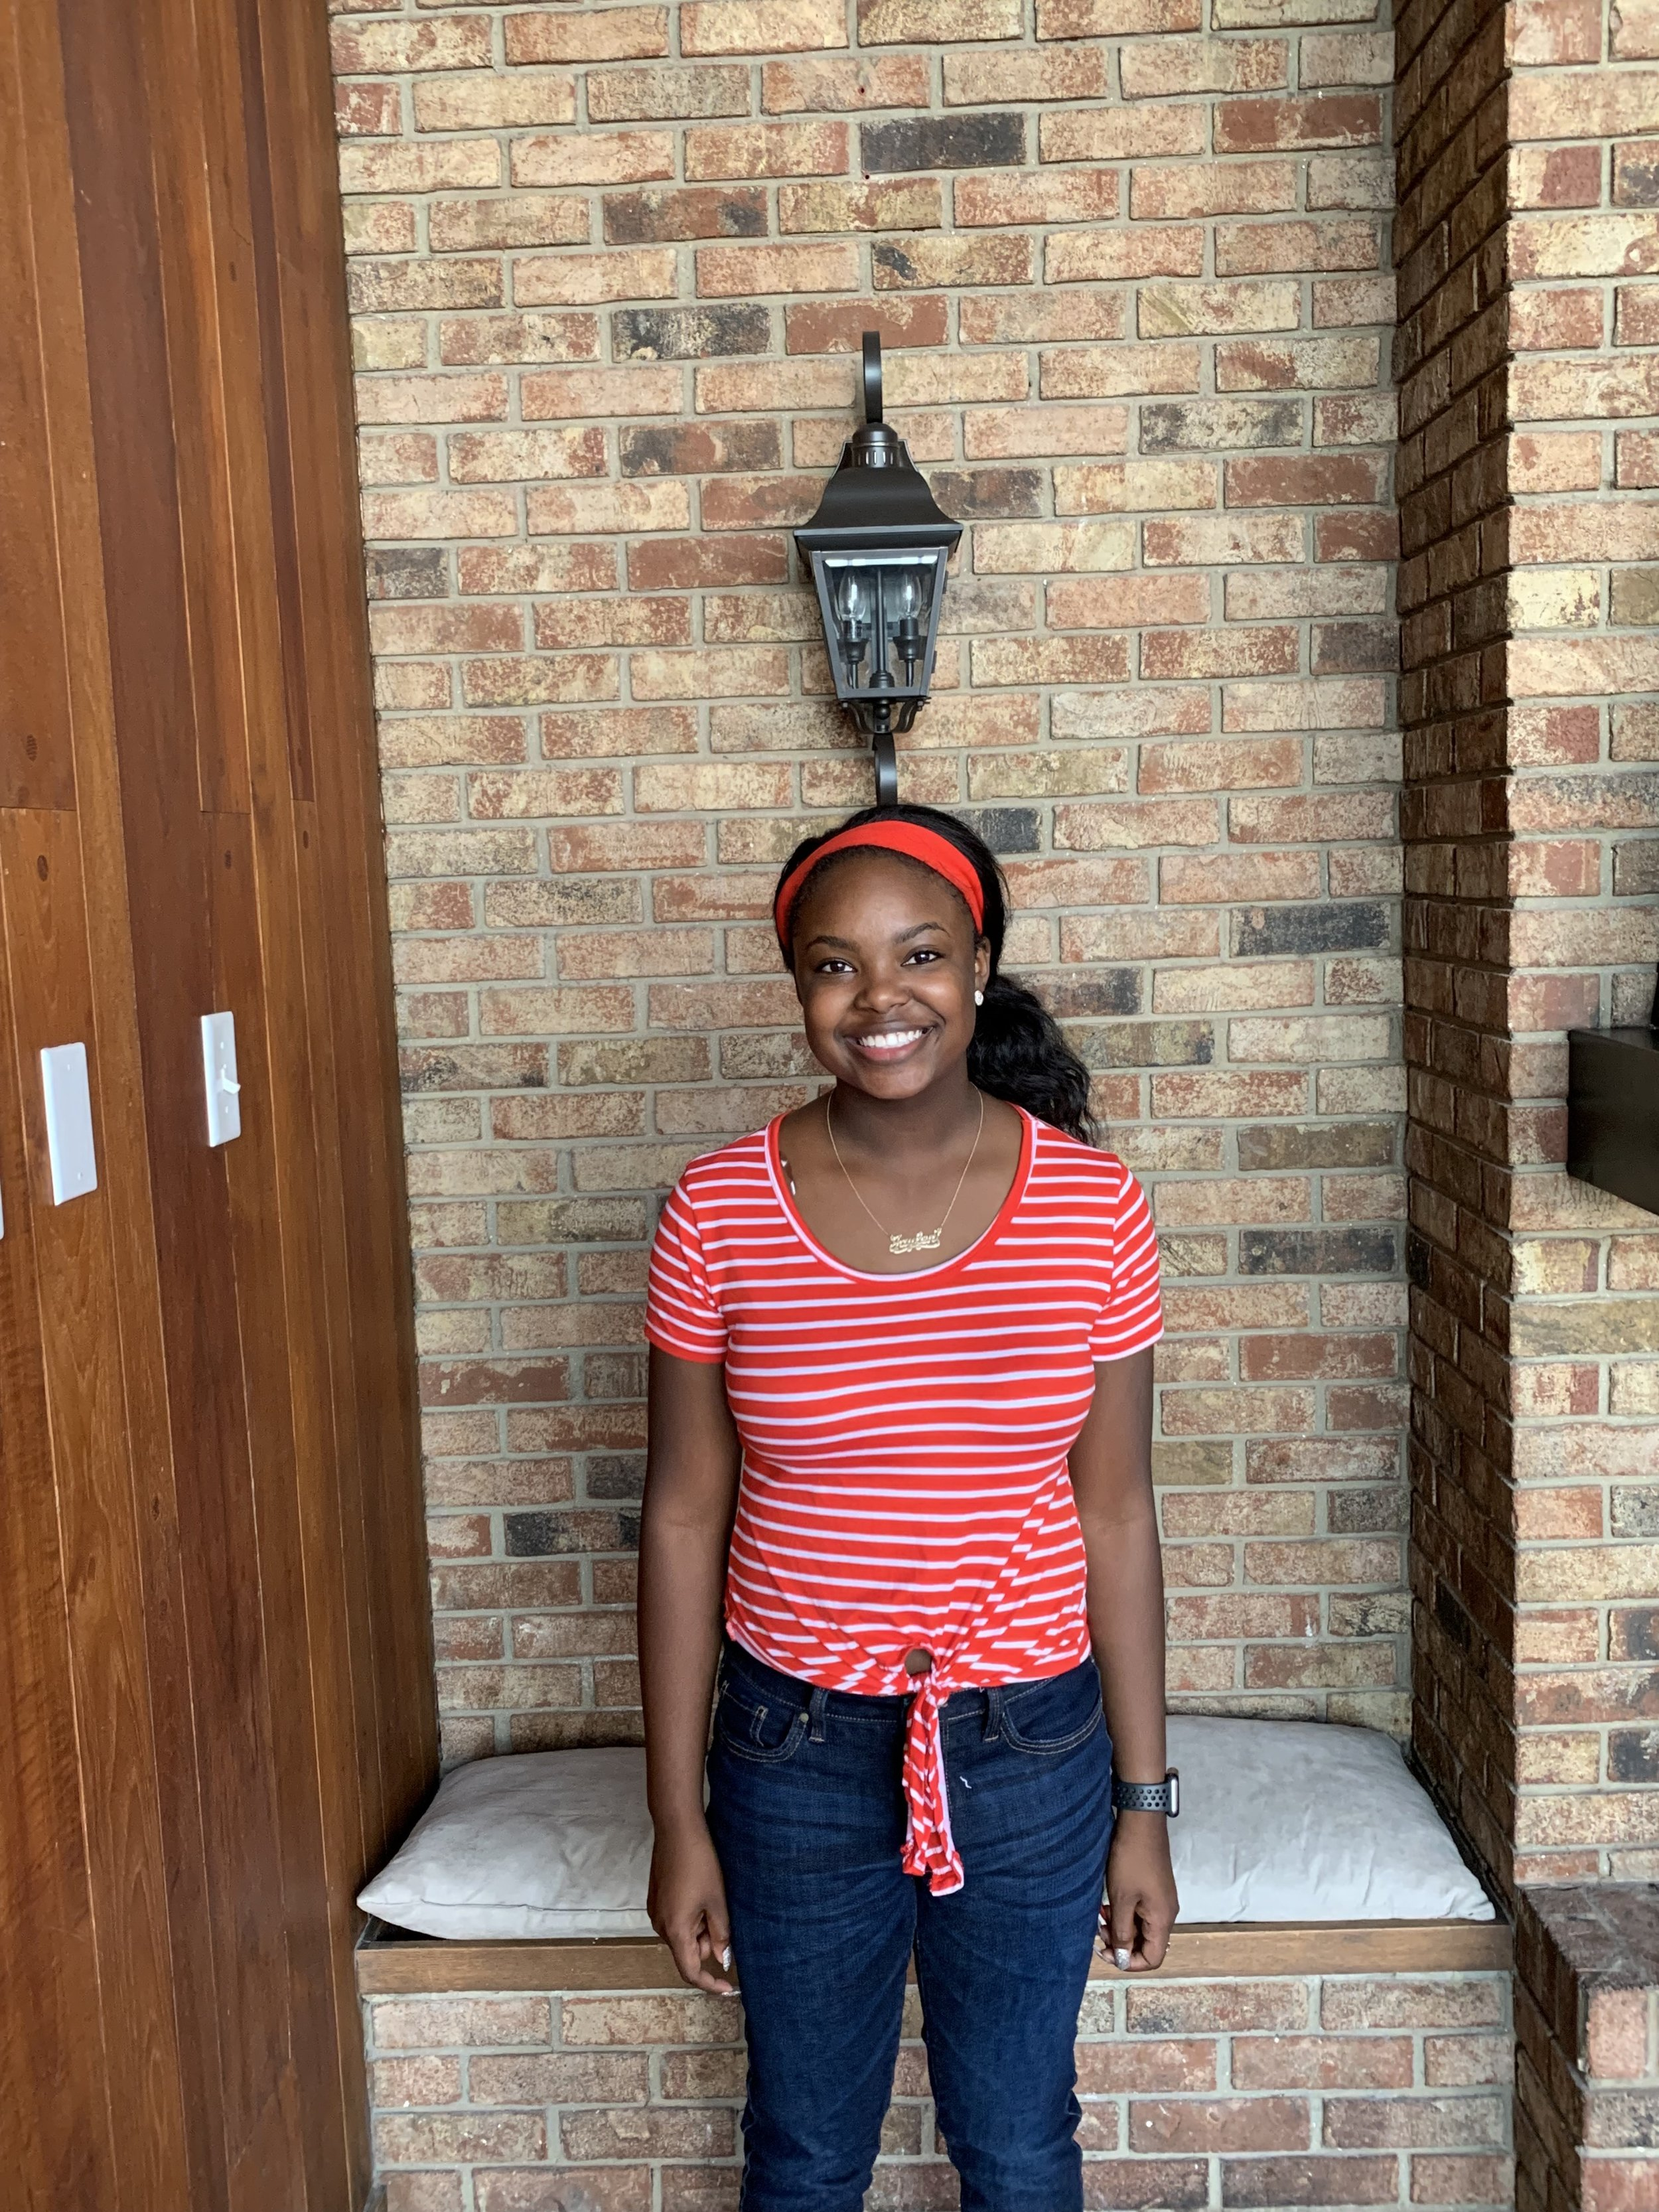 Ashley White - Ashley is on the track team and likes to workout and be outside. She likes many types of music from country, R&B, Hip Hop and Gospel. Ashely's favorite animal is a dolphin and she wants to be a veterinarian someday to help animals. Ashley loves movies and taking time to relax.